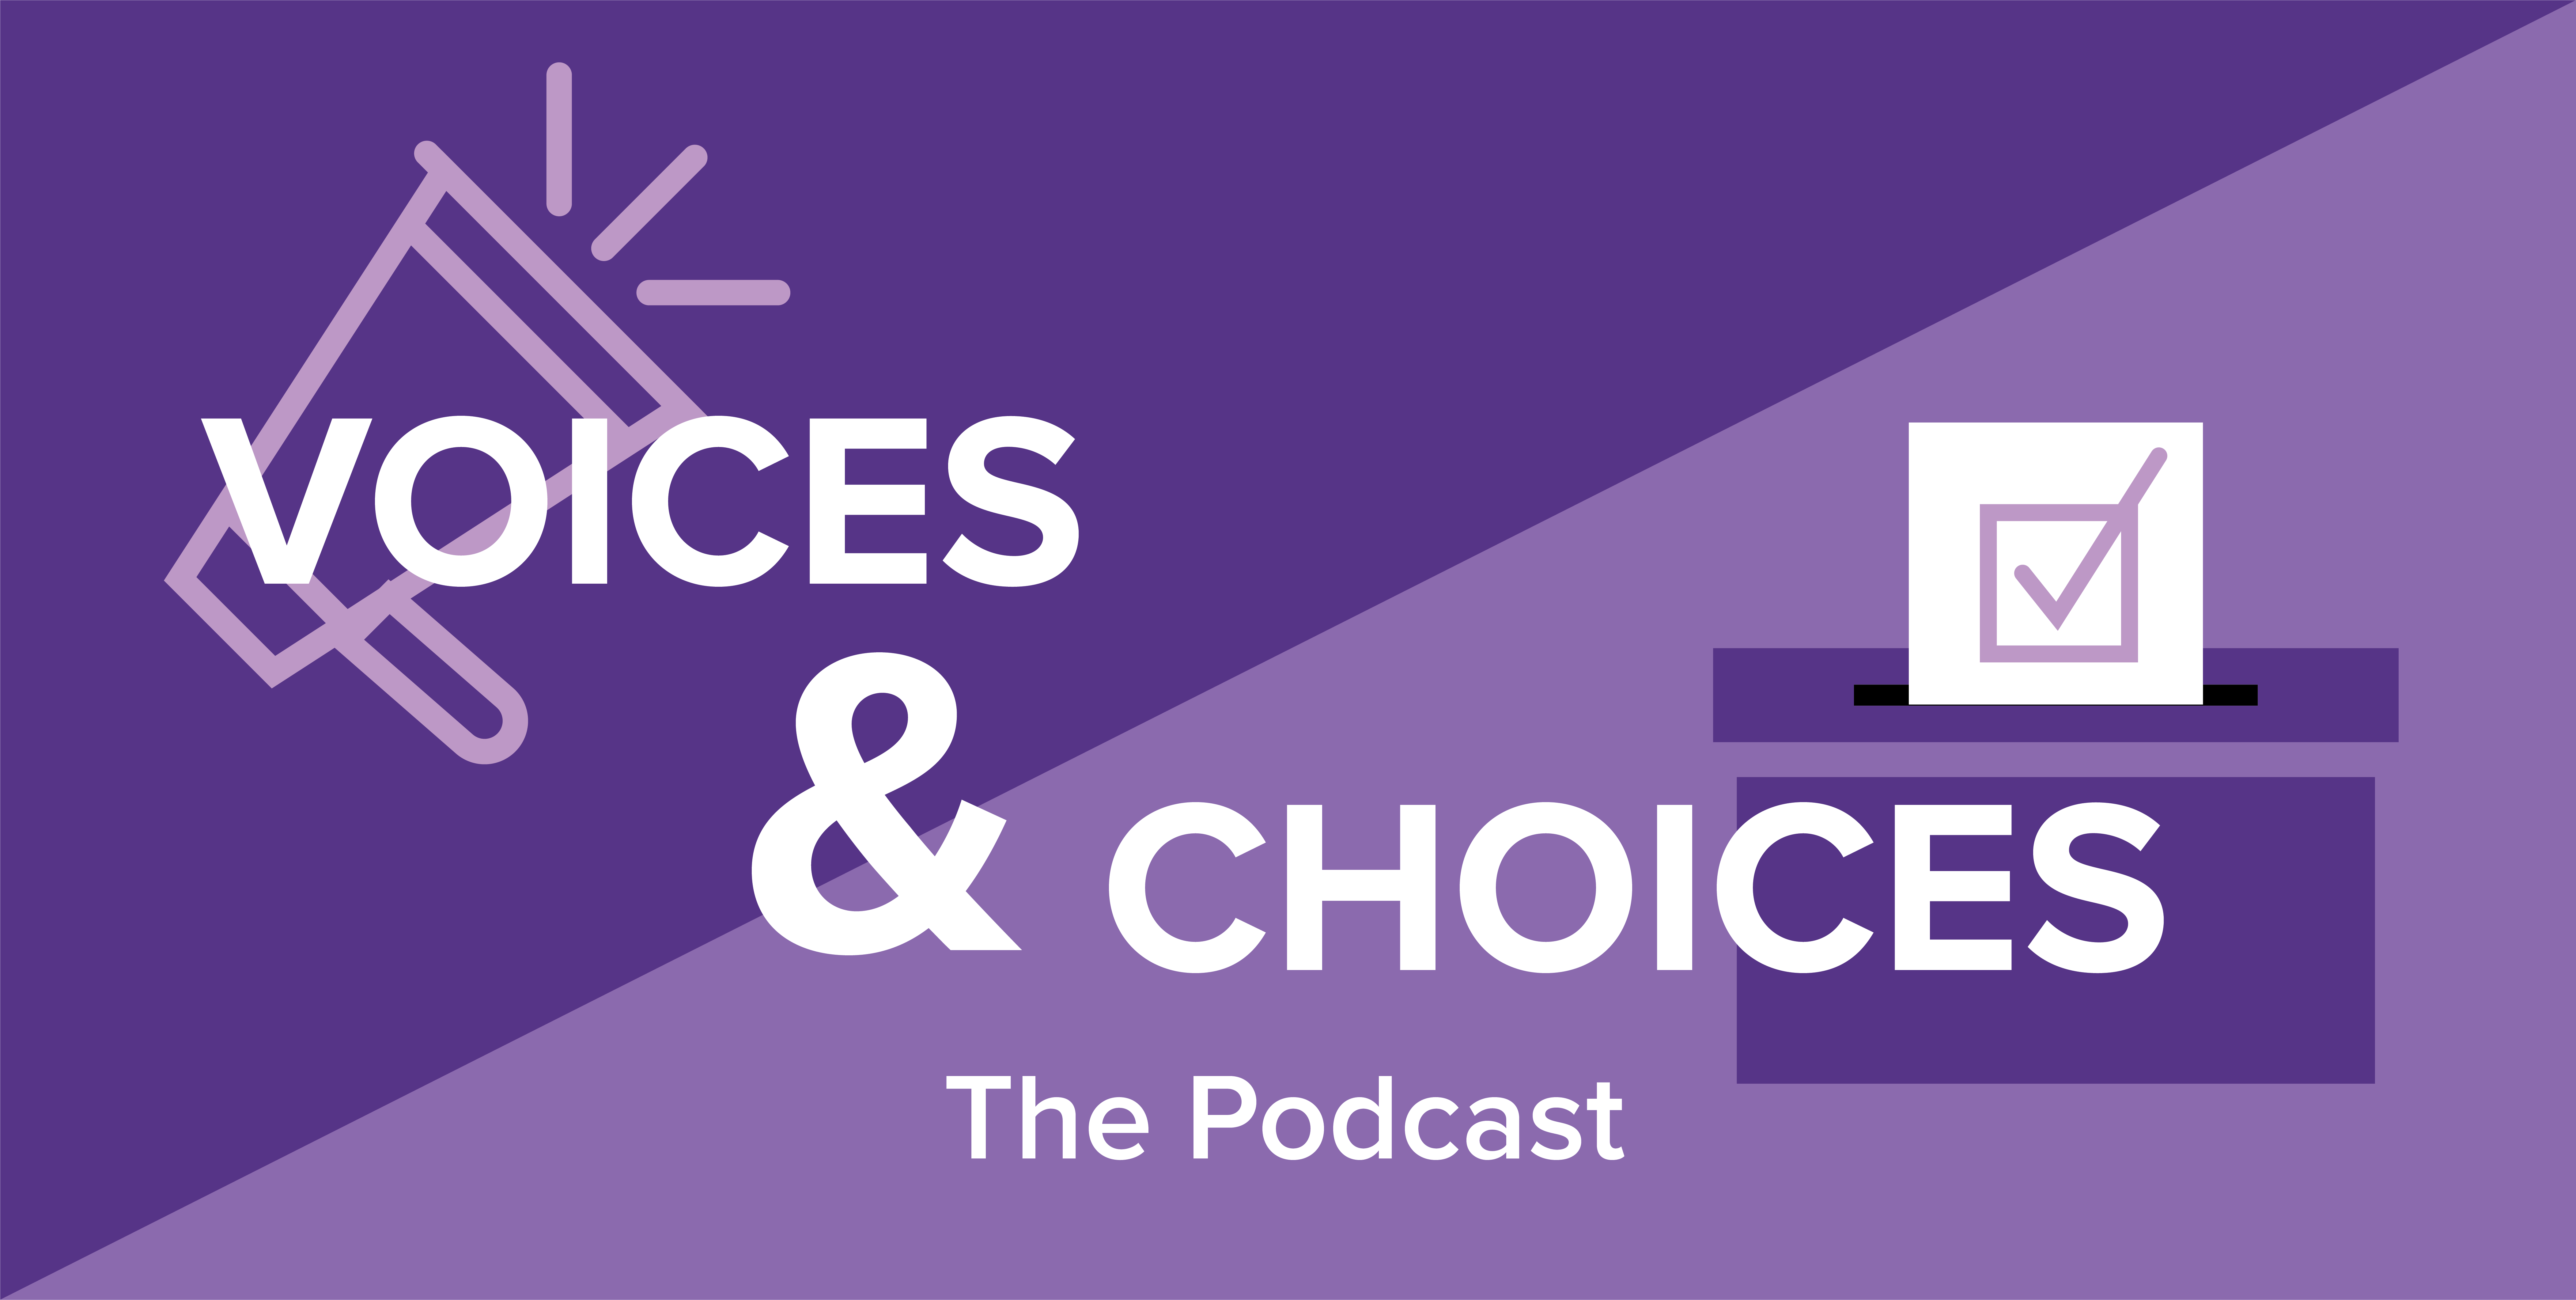 Podcast: Maria Perez talks ranked choice voting in New Mexico